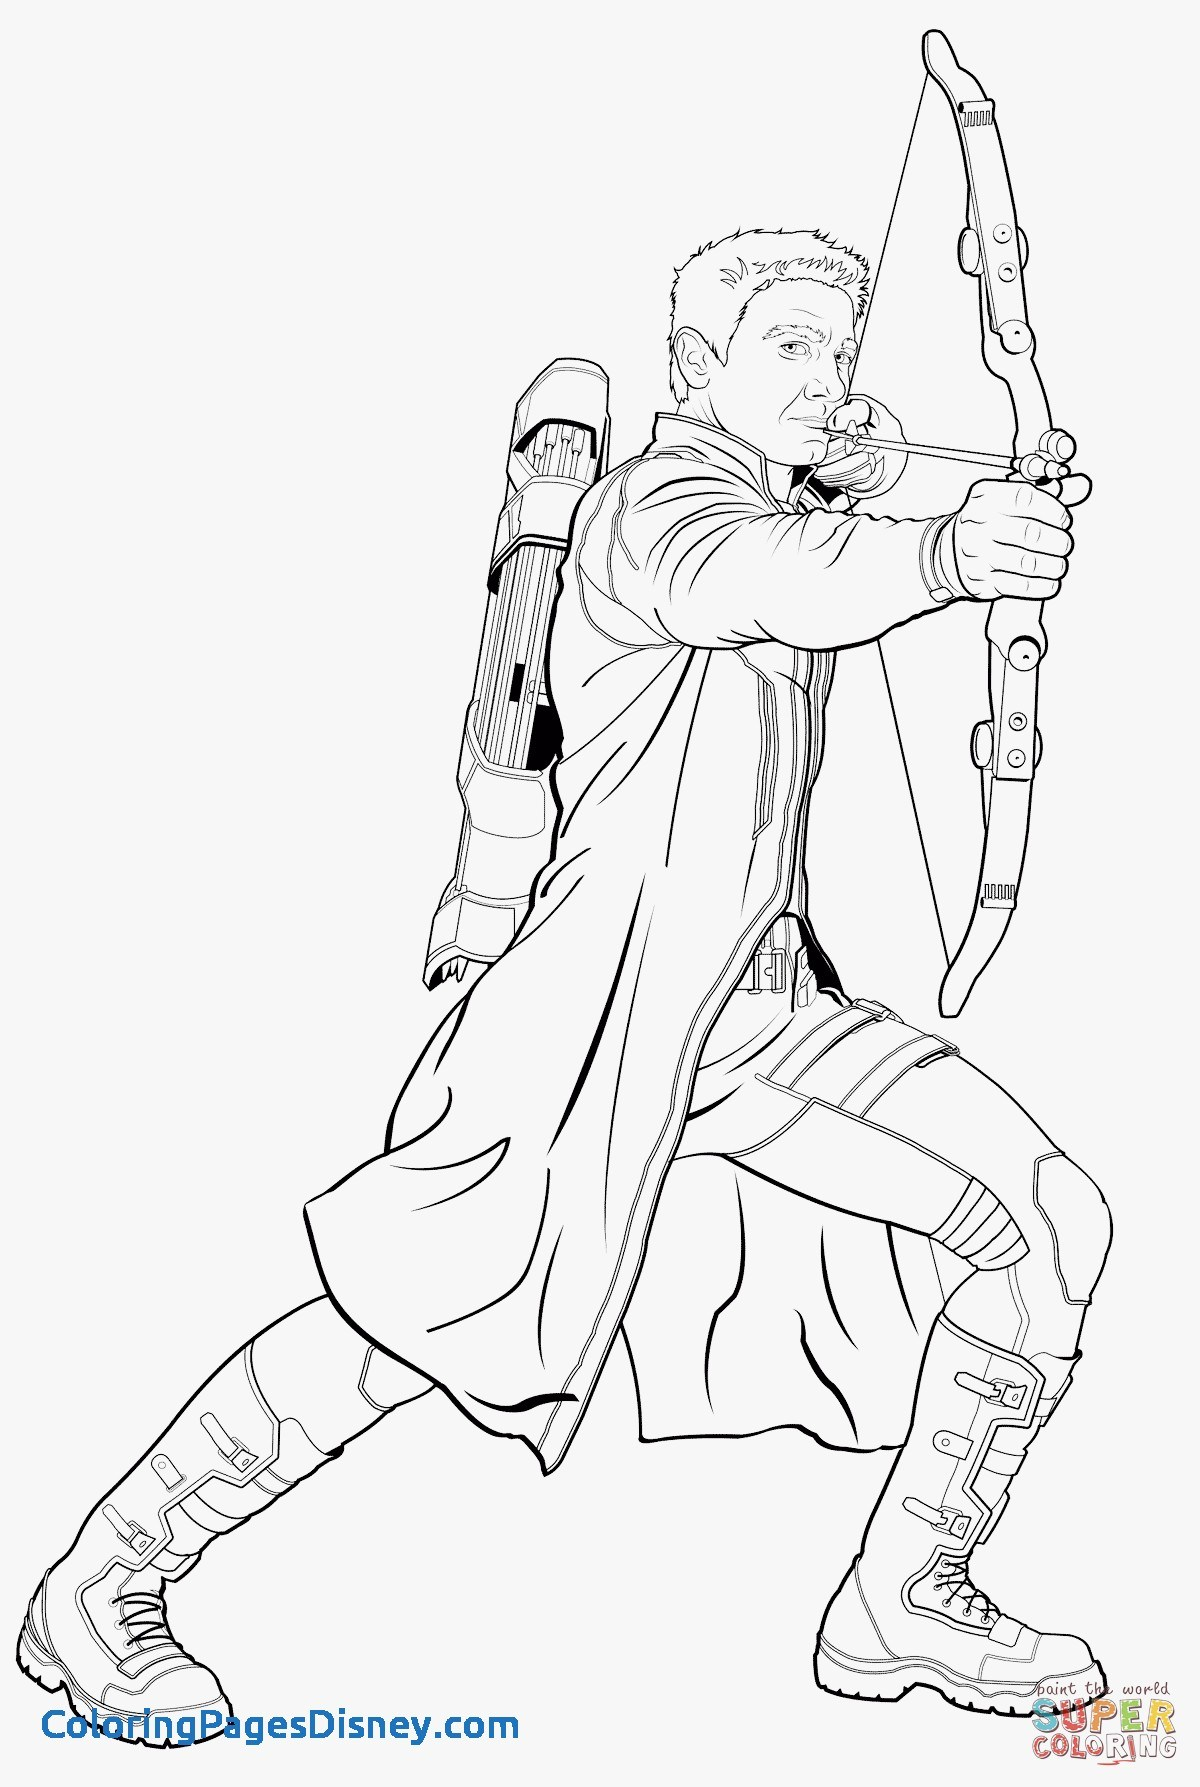 1200x1787 Quicksilver Coloring Pages Unique Avengers Hawkeye Coloring Page